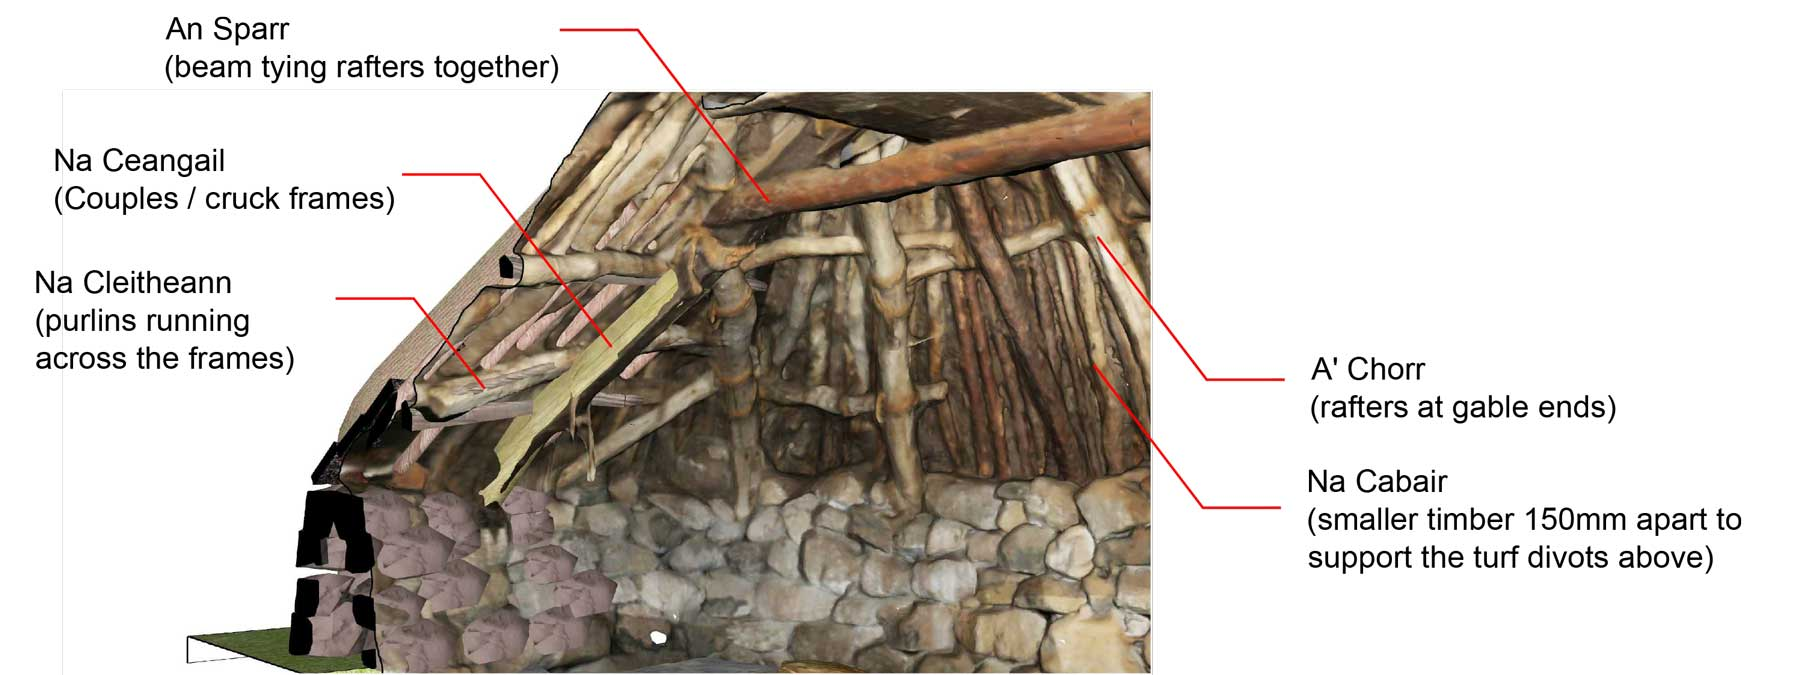 Cross section showing interior structure of thatched cottage on Skye by MAAC Studio Inverness